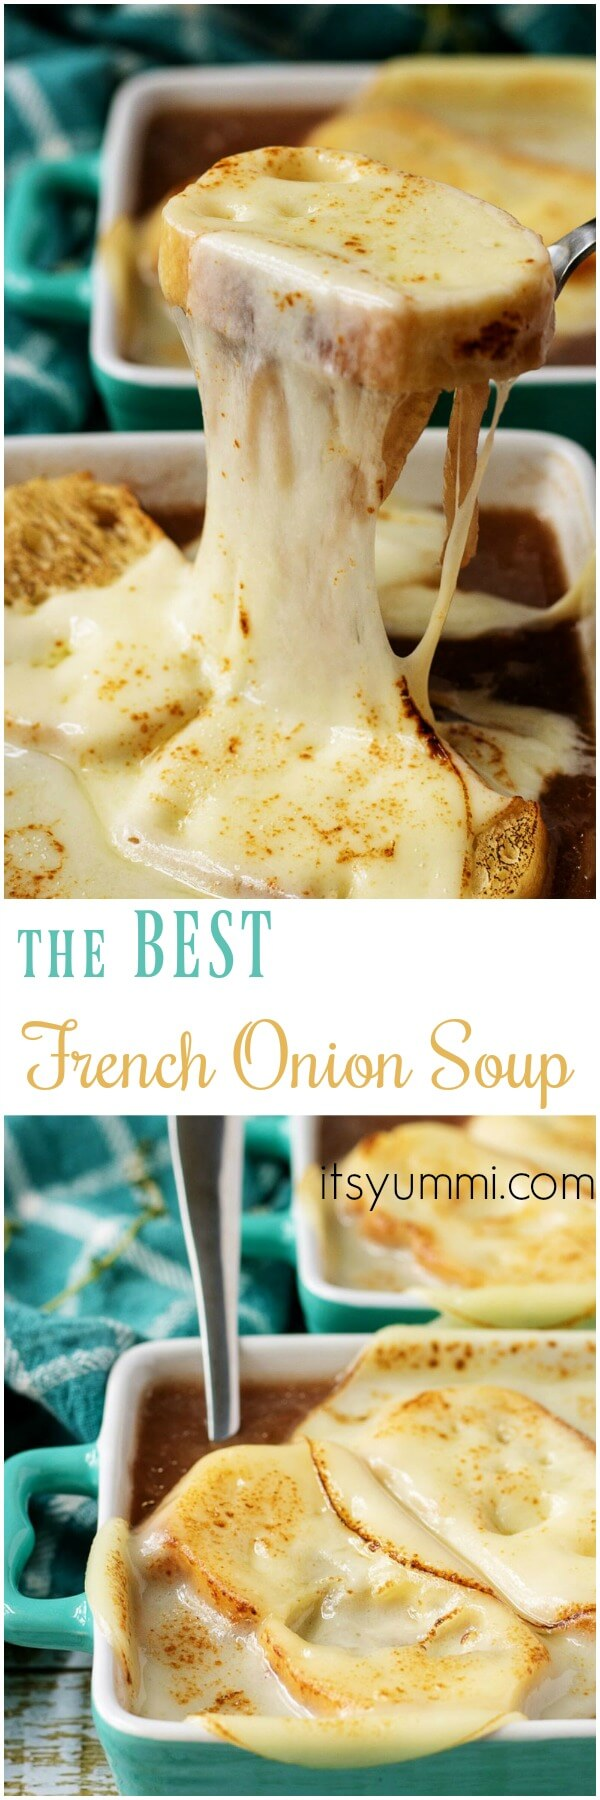 collage image of French onion soup